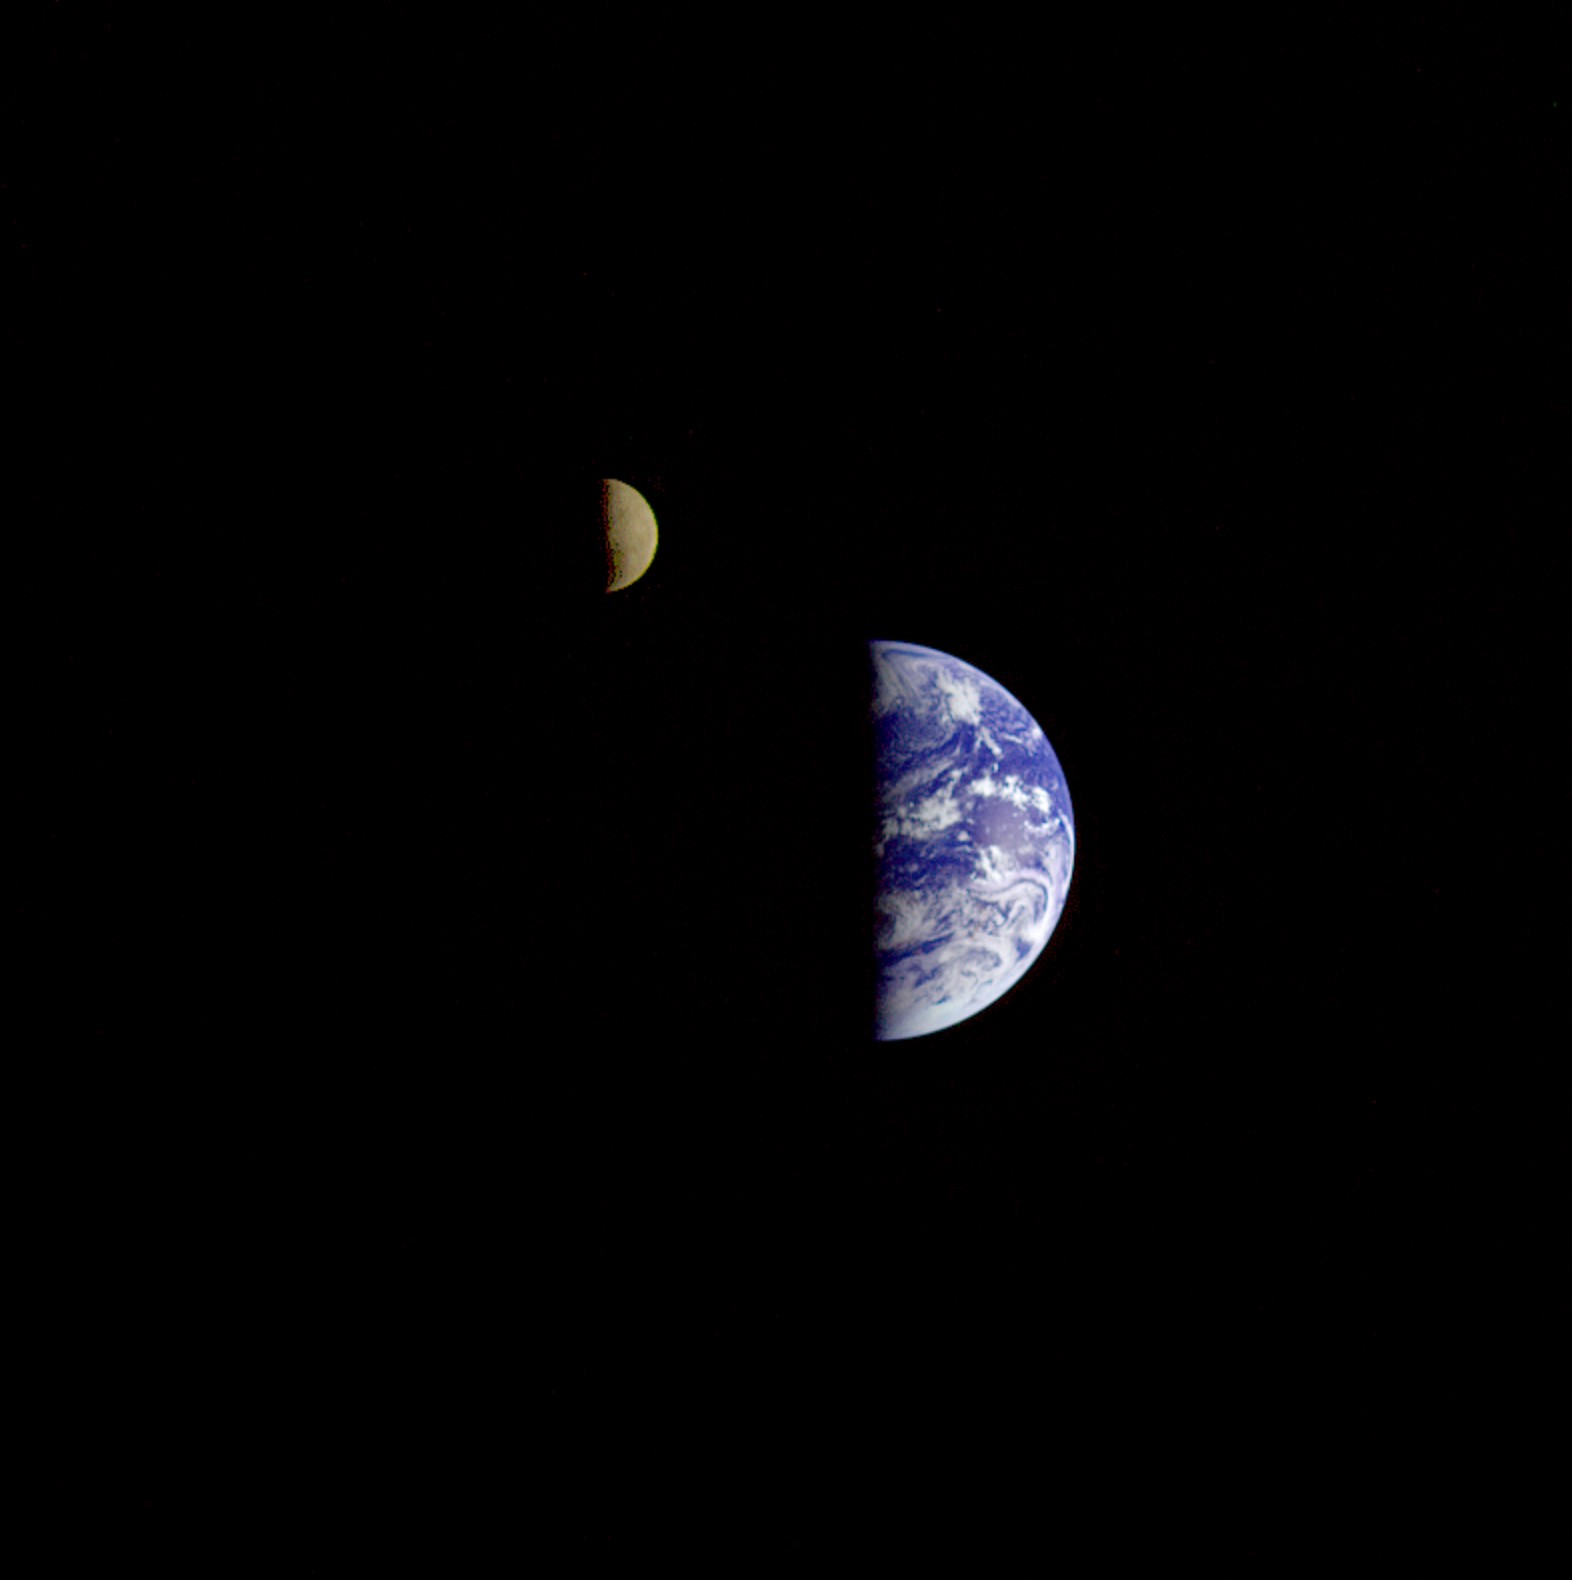 Real photo of Earth Moon as seen by Galileo spacecraft